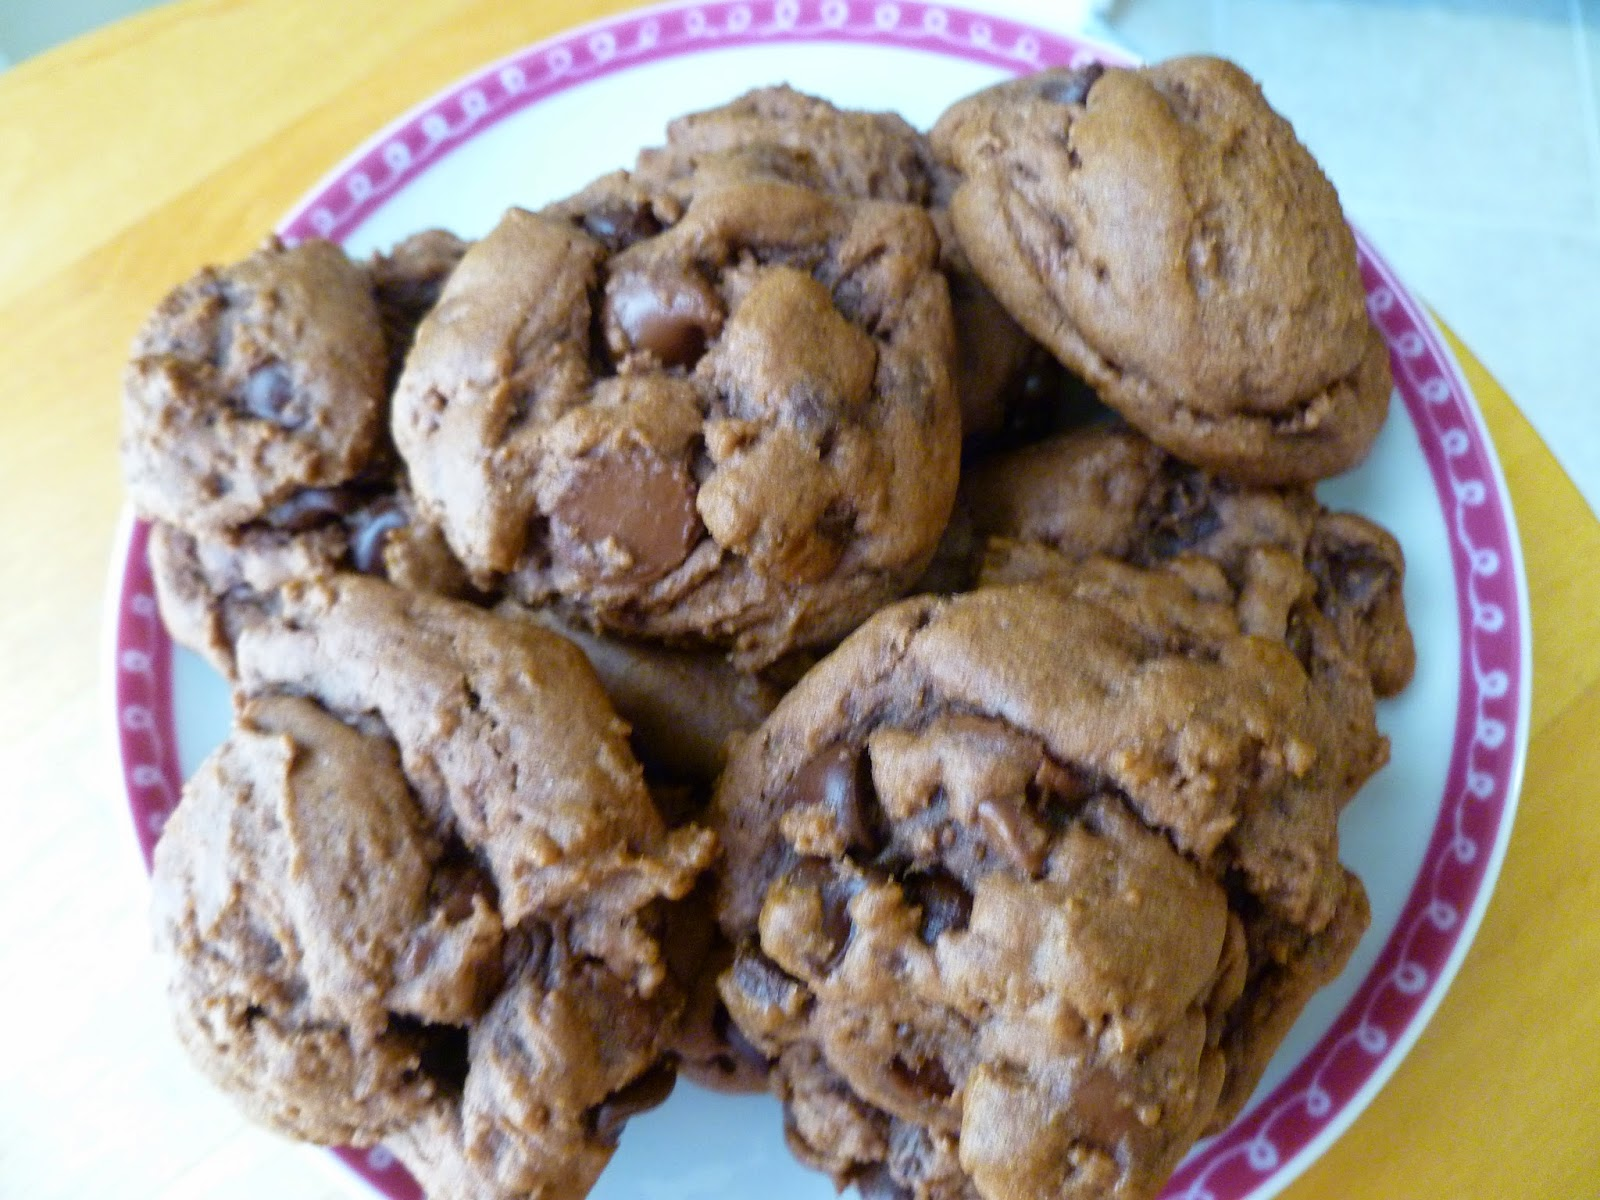 The Pastry Chef's Baking: Double Chocolate Chip Pudding Cookies